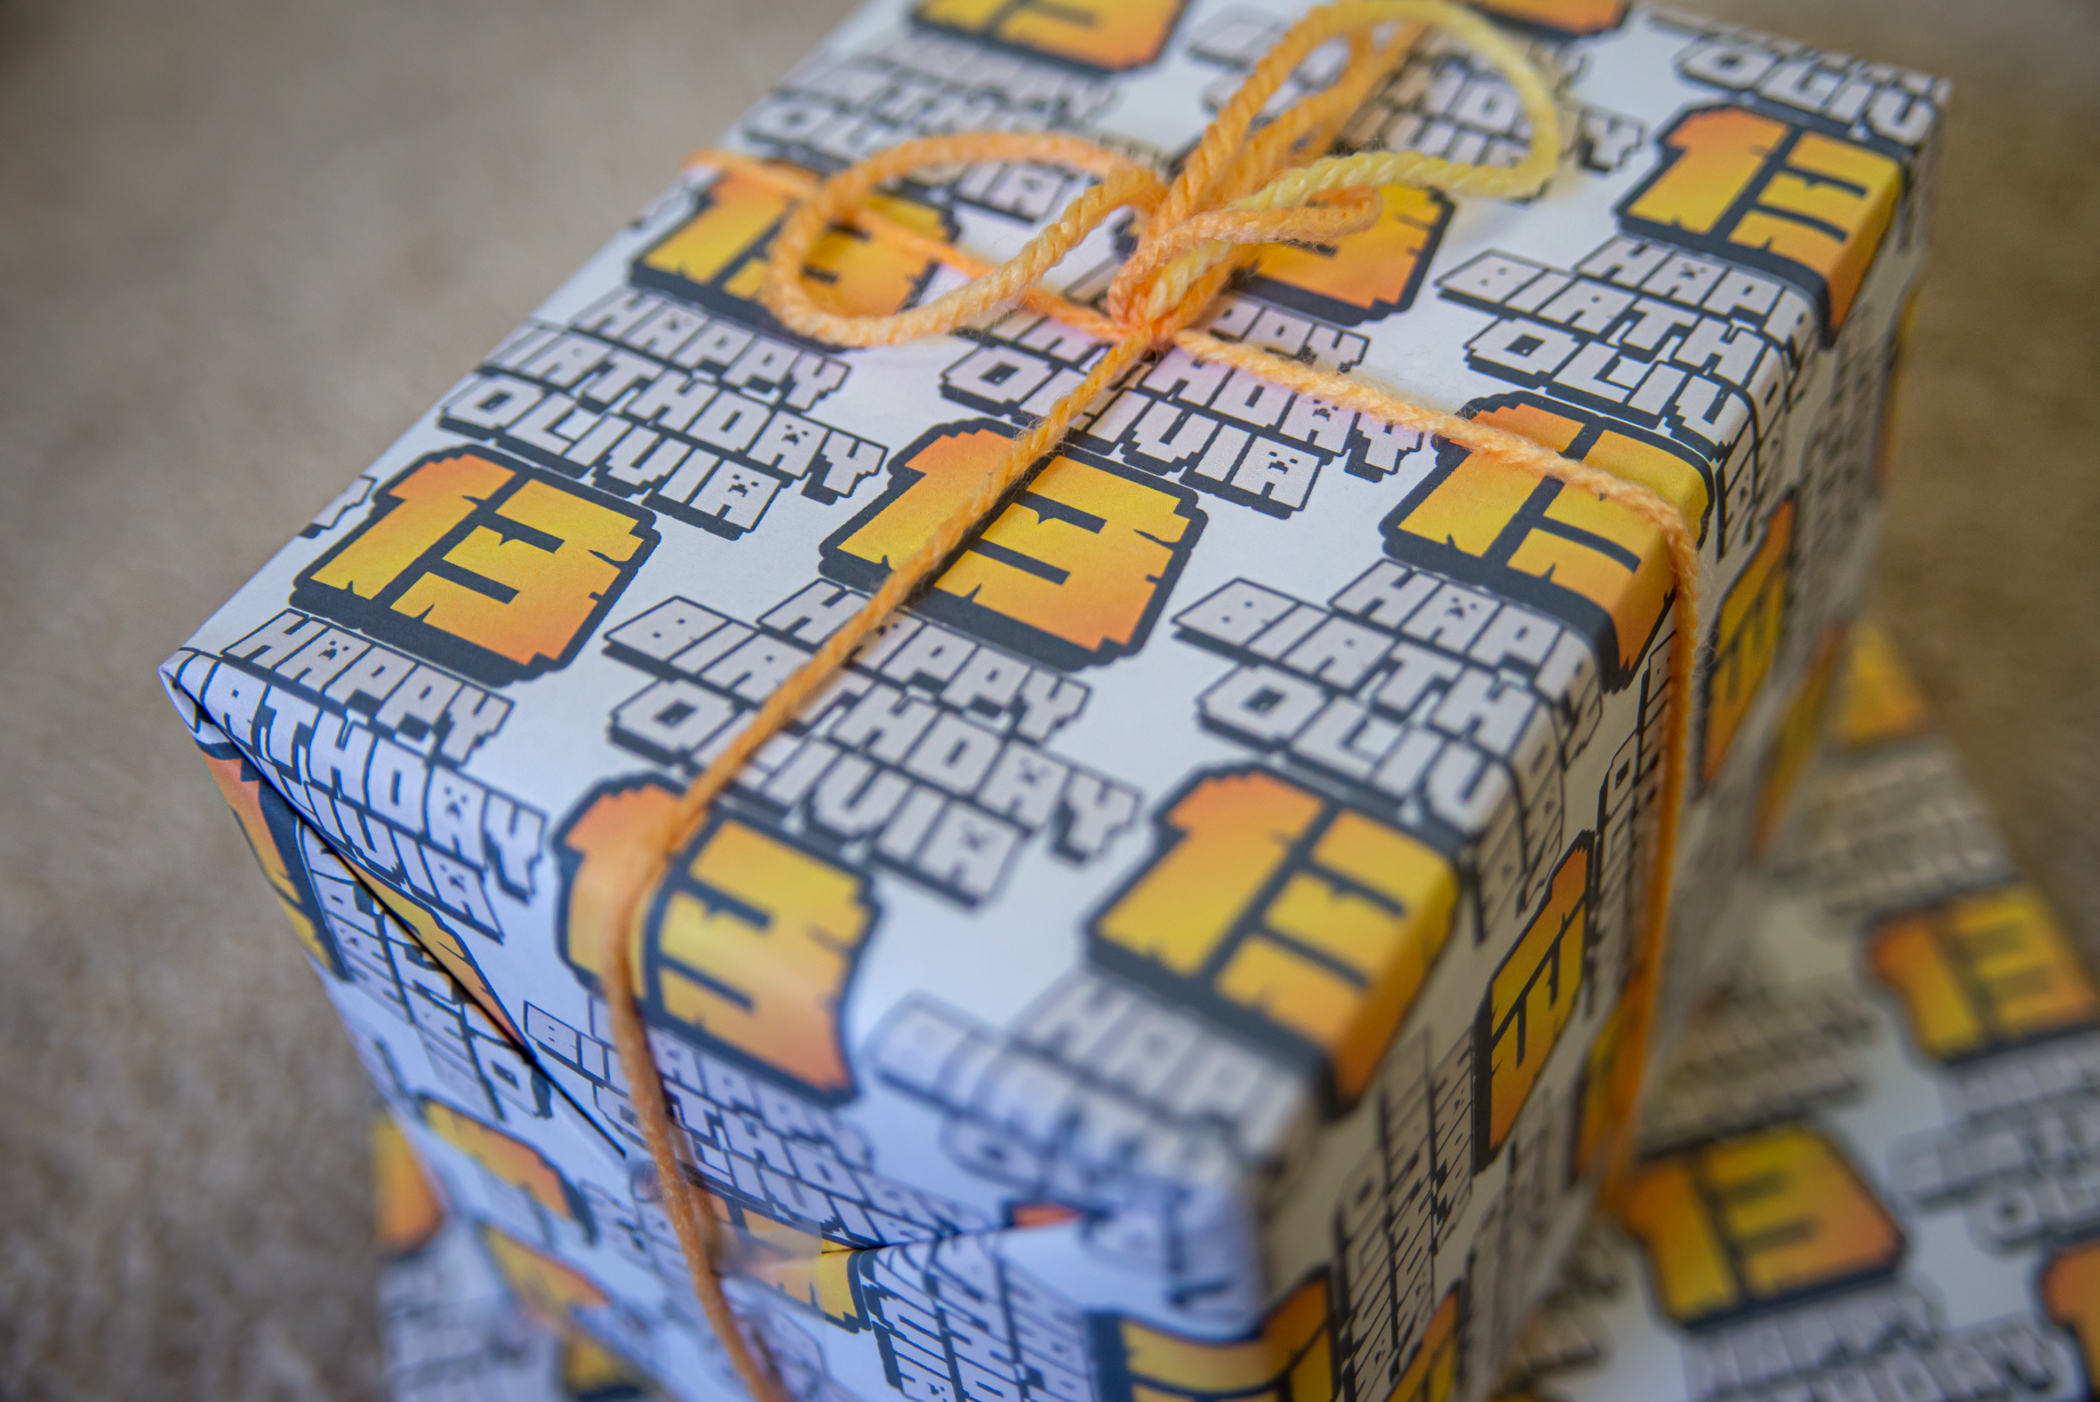 Minecraft-style custom wrapping paper